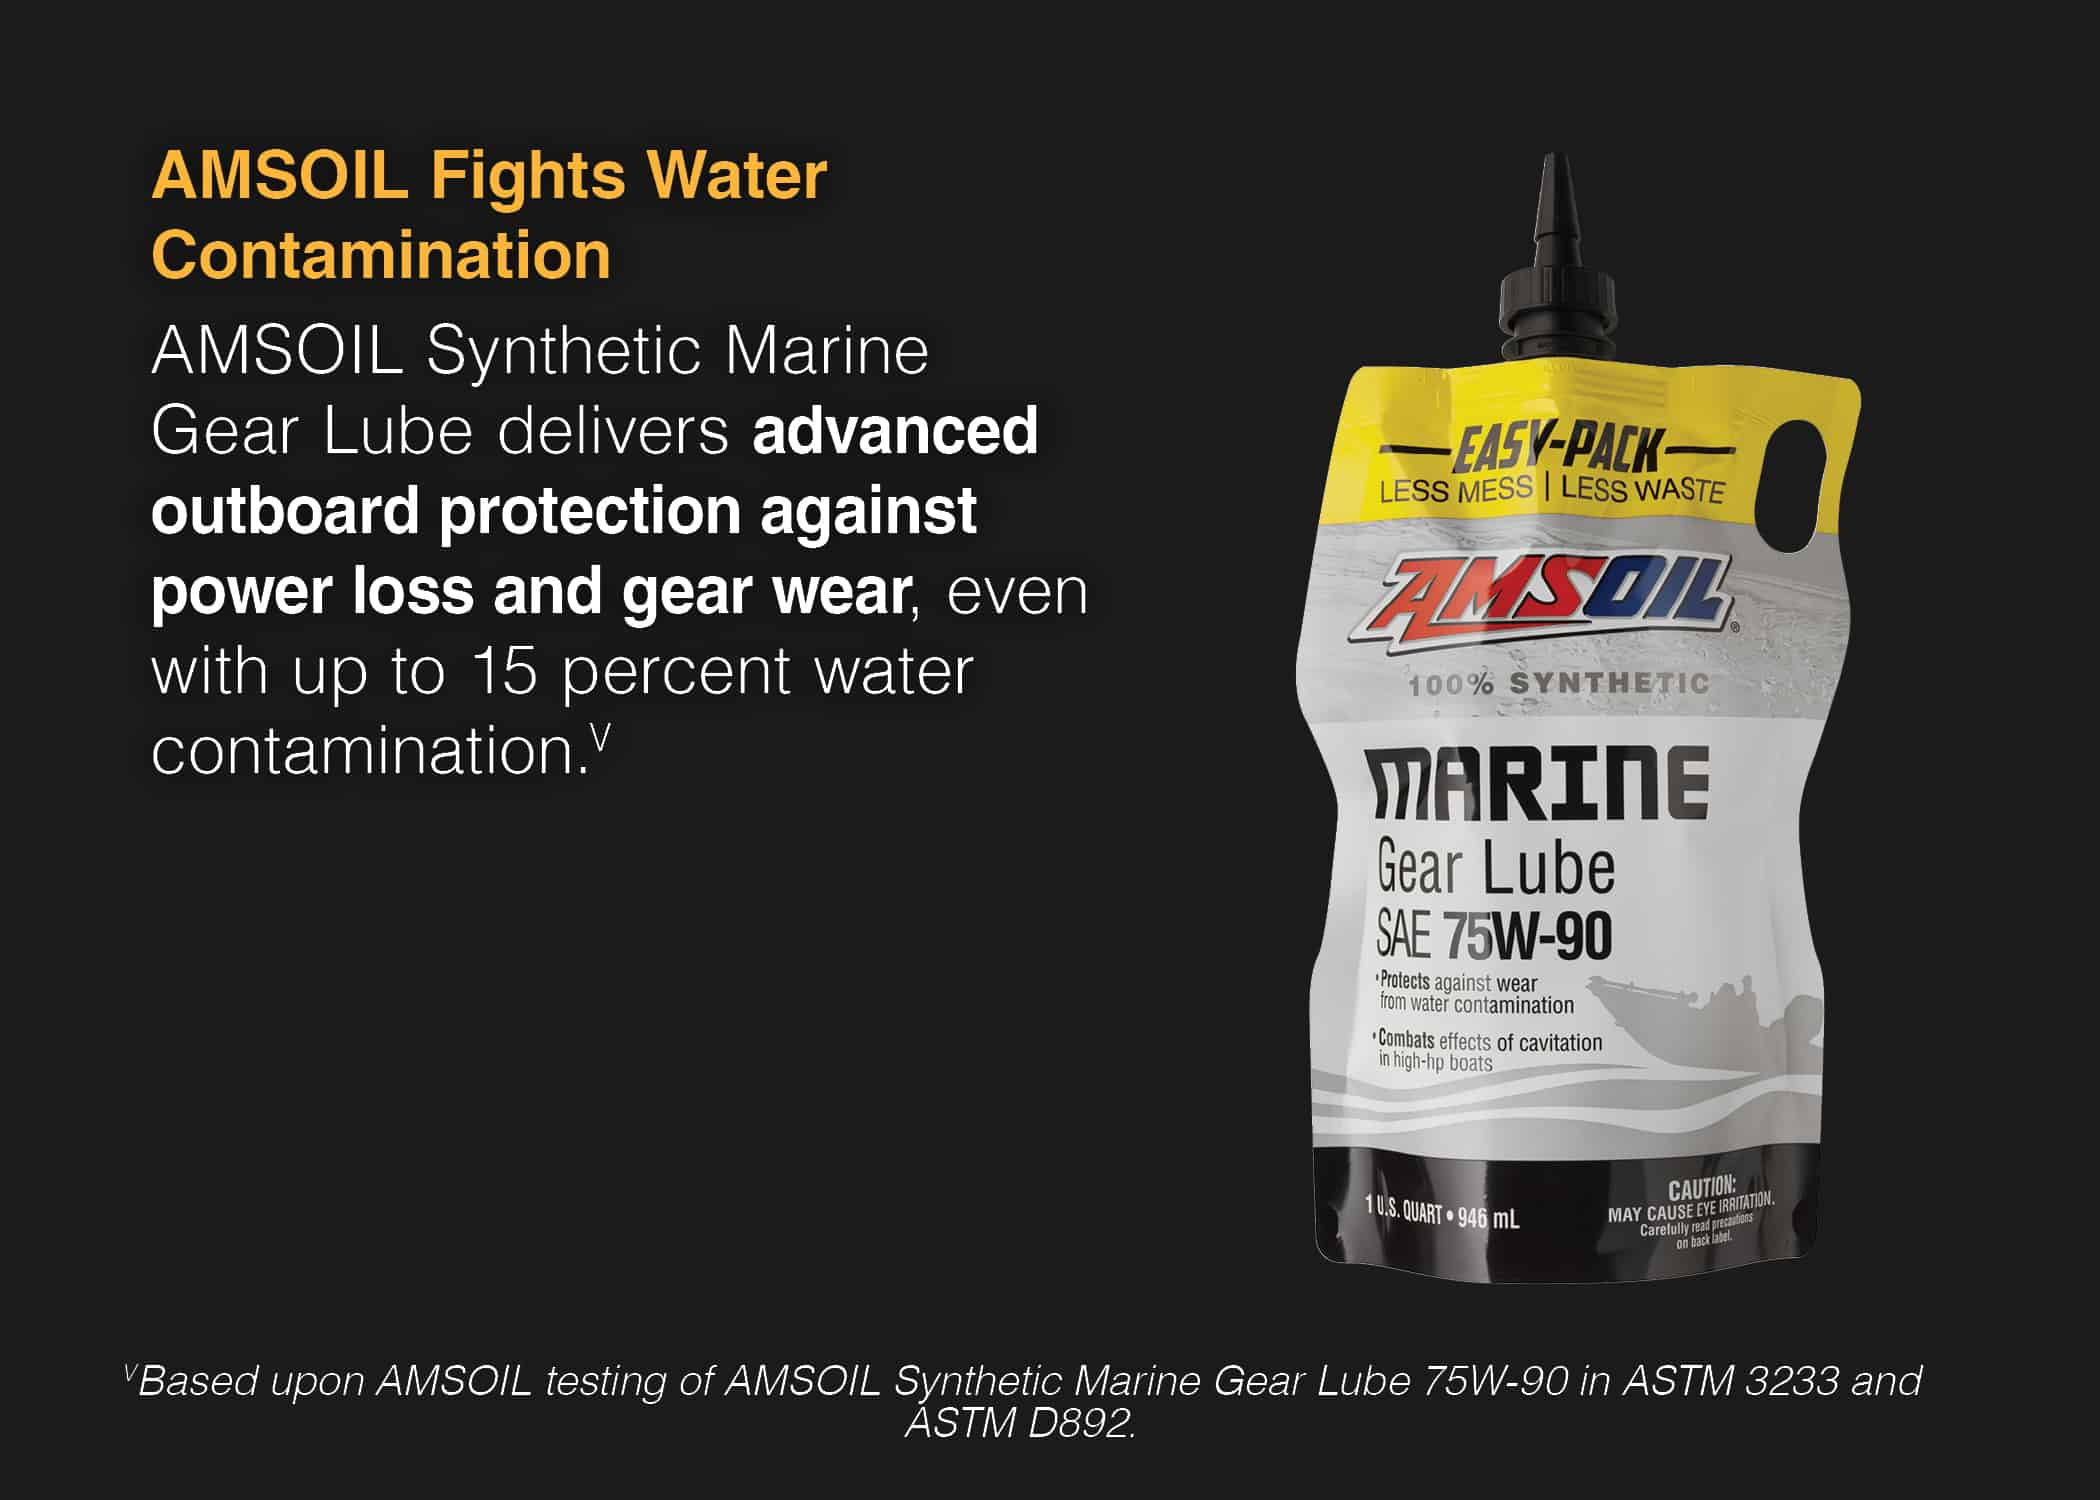 Synthetic Marine Gear Lube